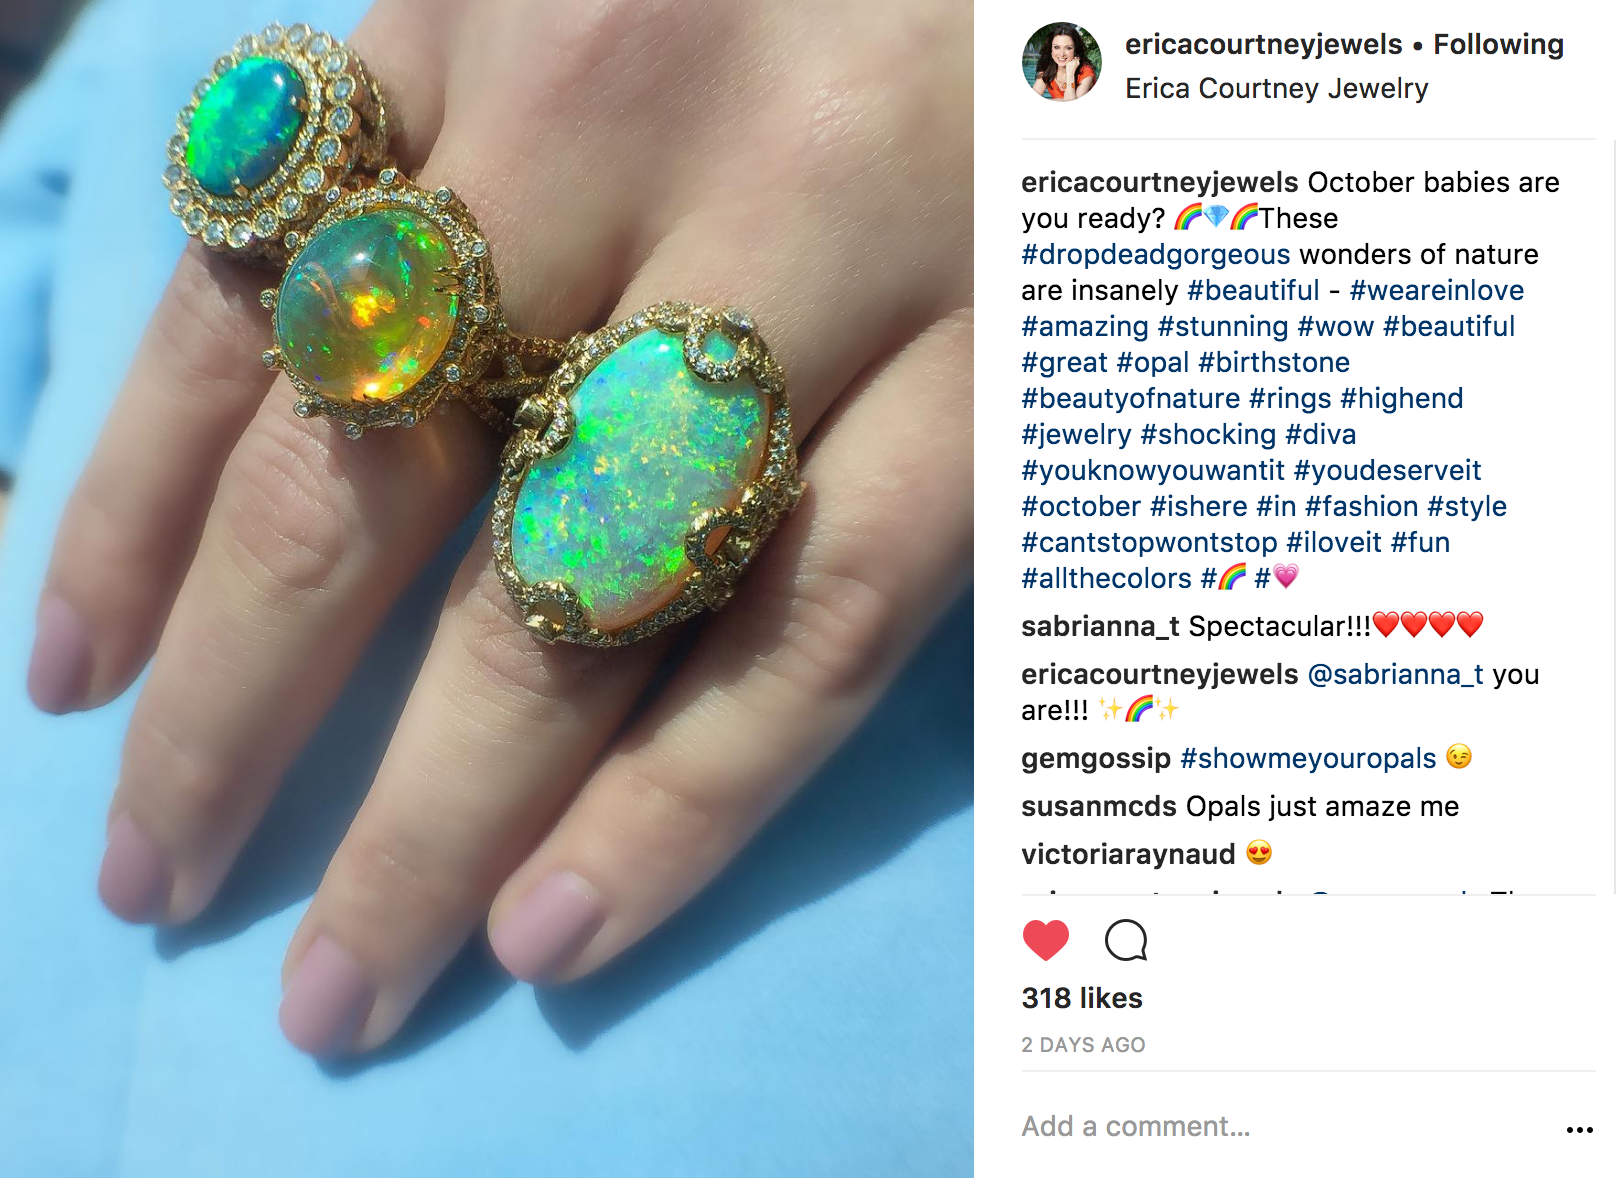 @ericacourtneyjewels Instagram | JCK Social Setting